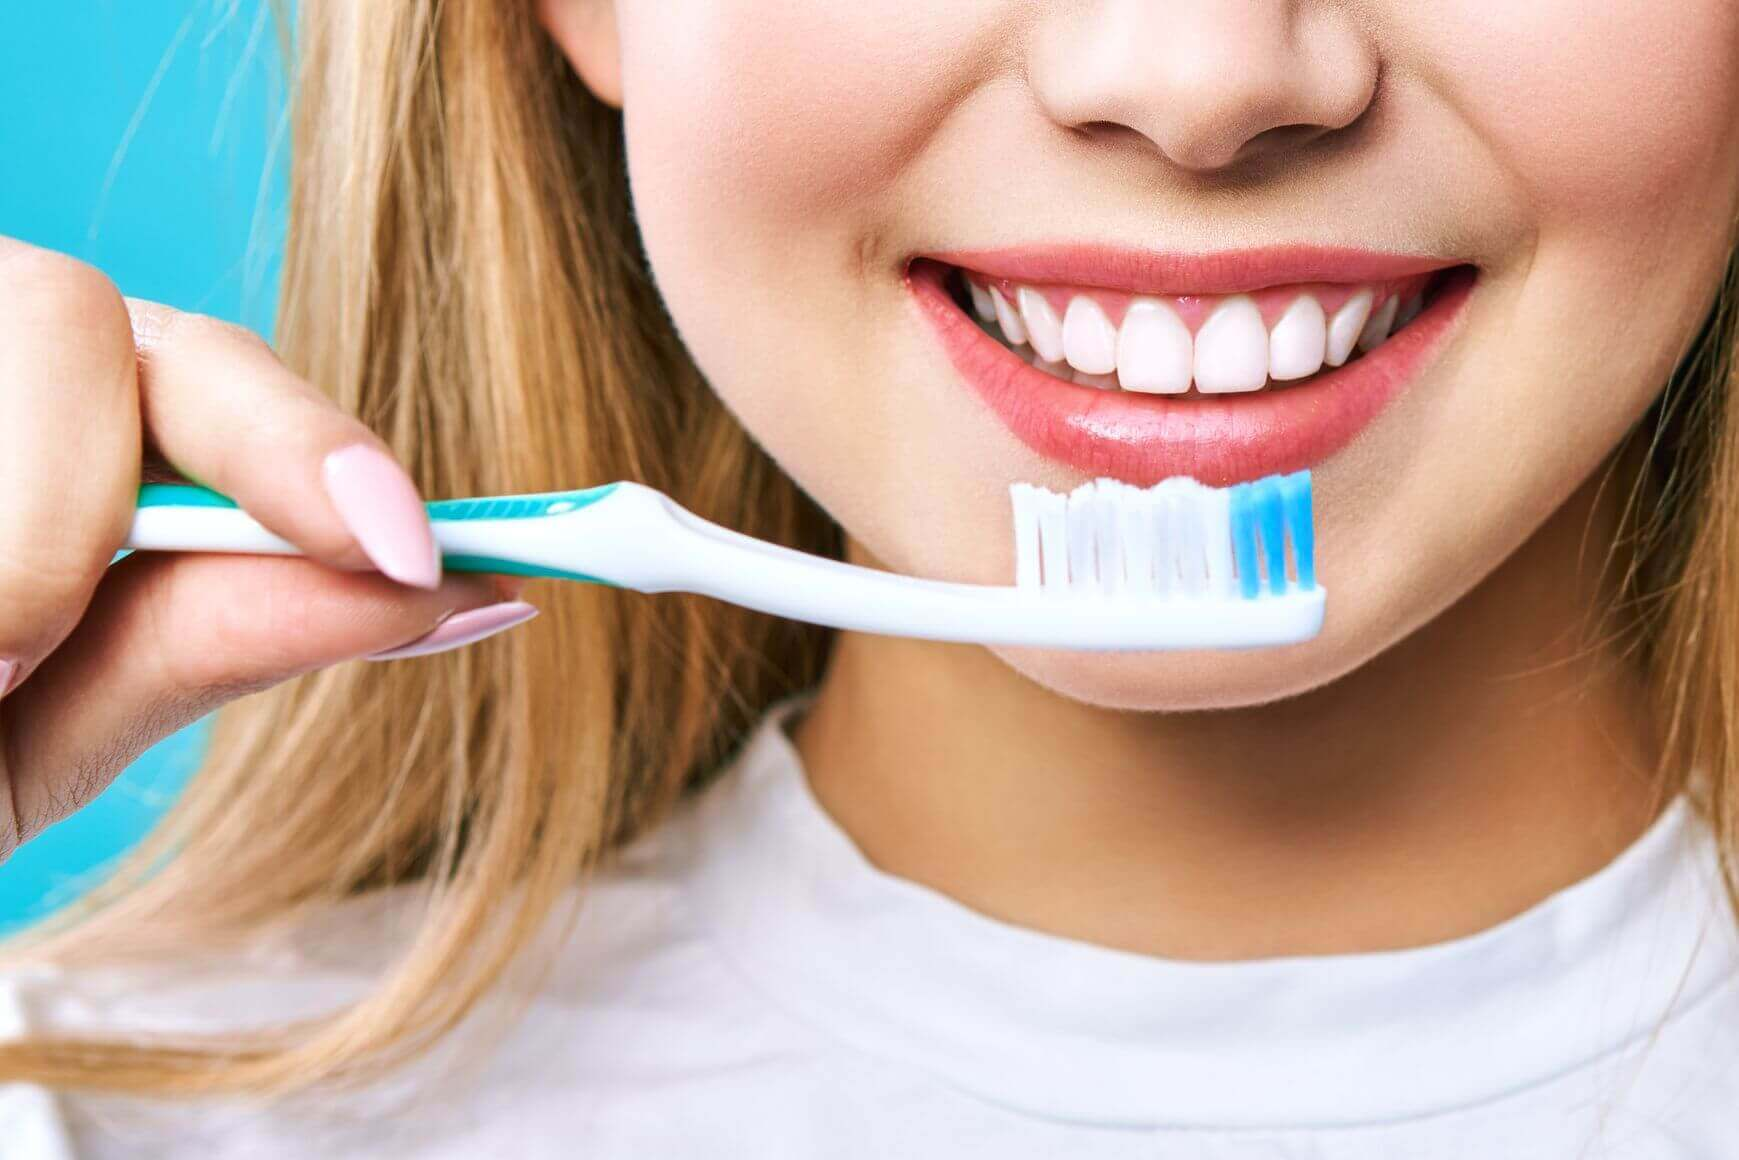 oung-beautiful-woman-is-engaged-cleaning-teeth-Your toothbrush can Transmit Corona virus